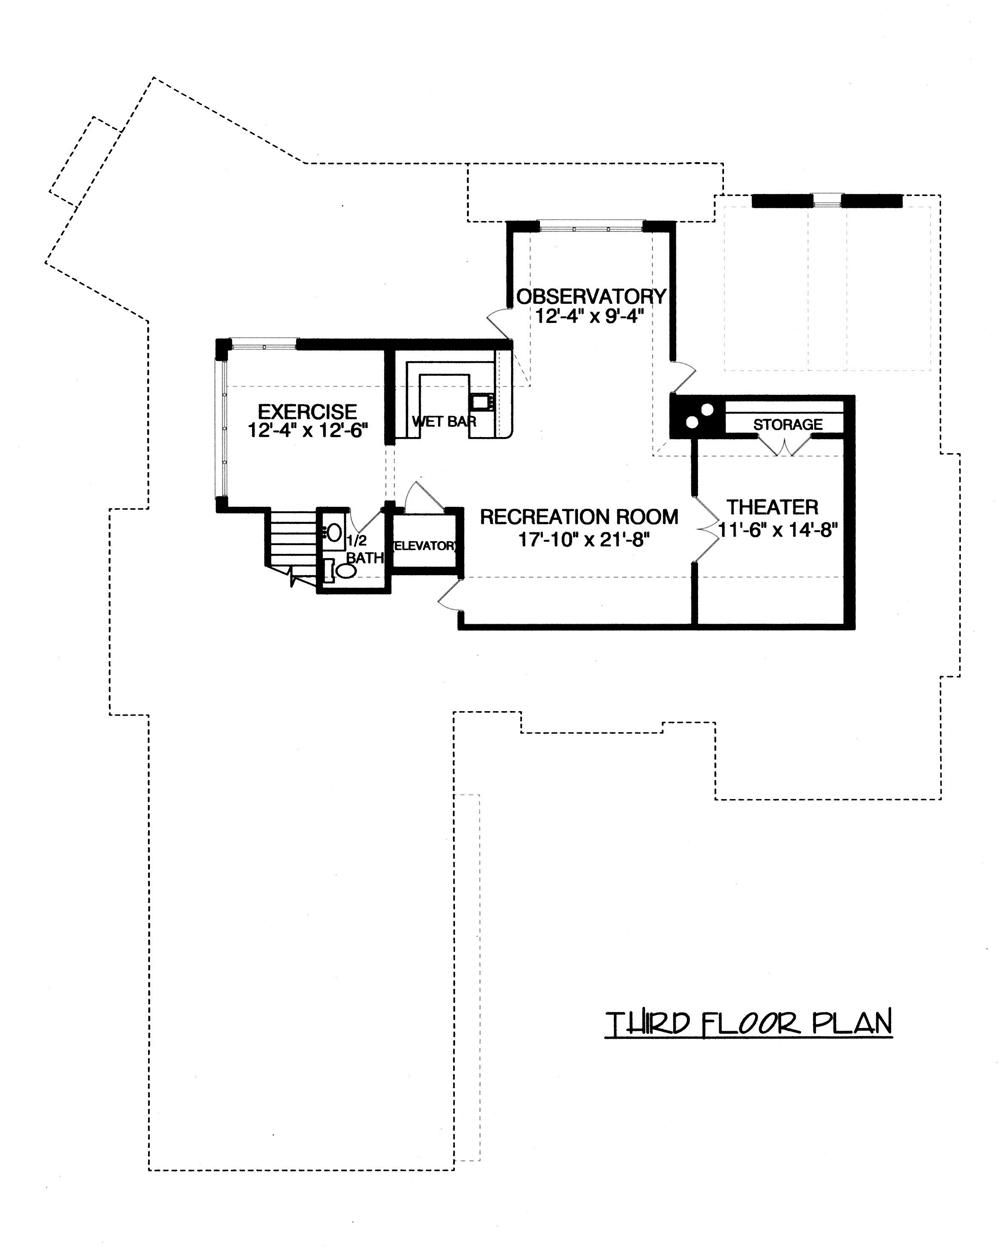 Floor Plan Third Story for these house plans.